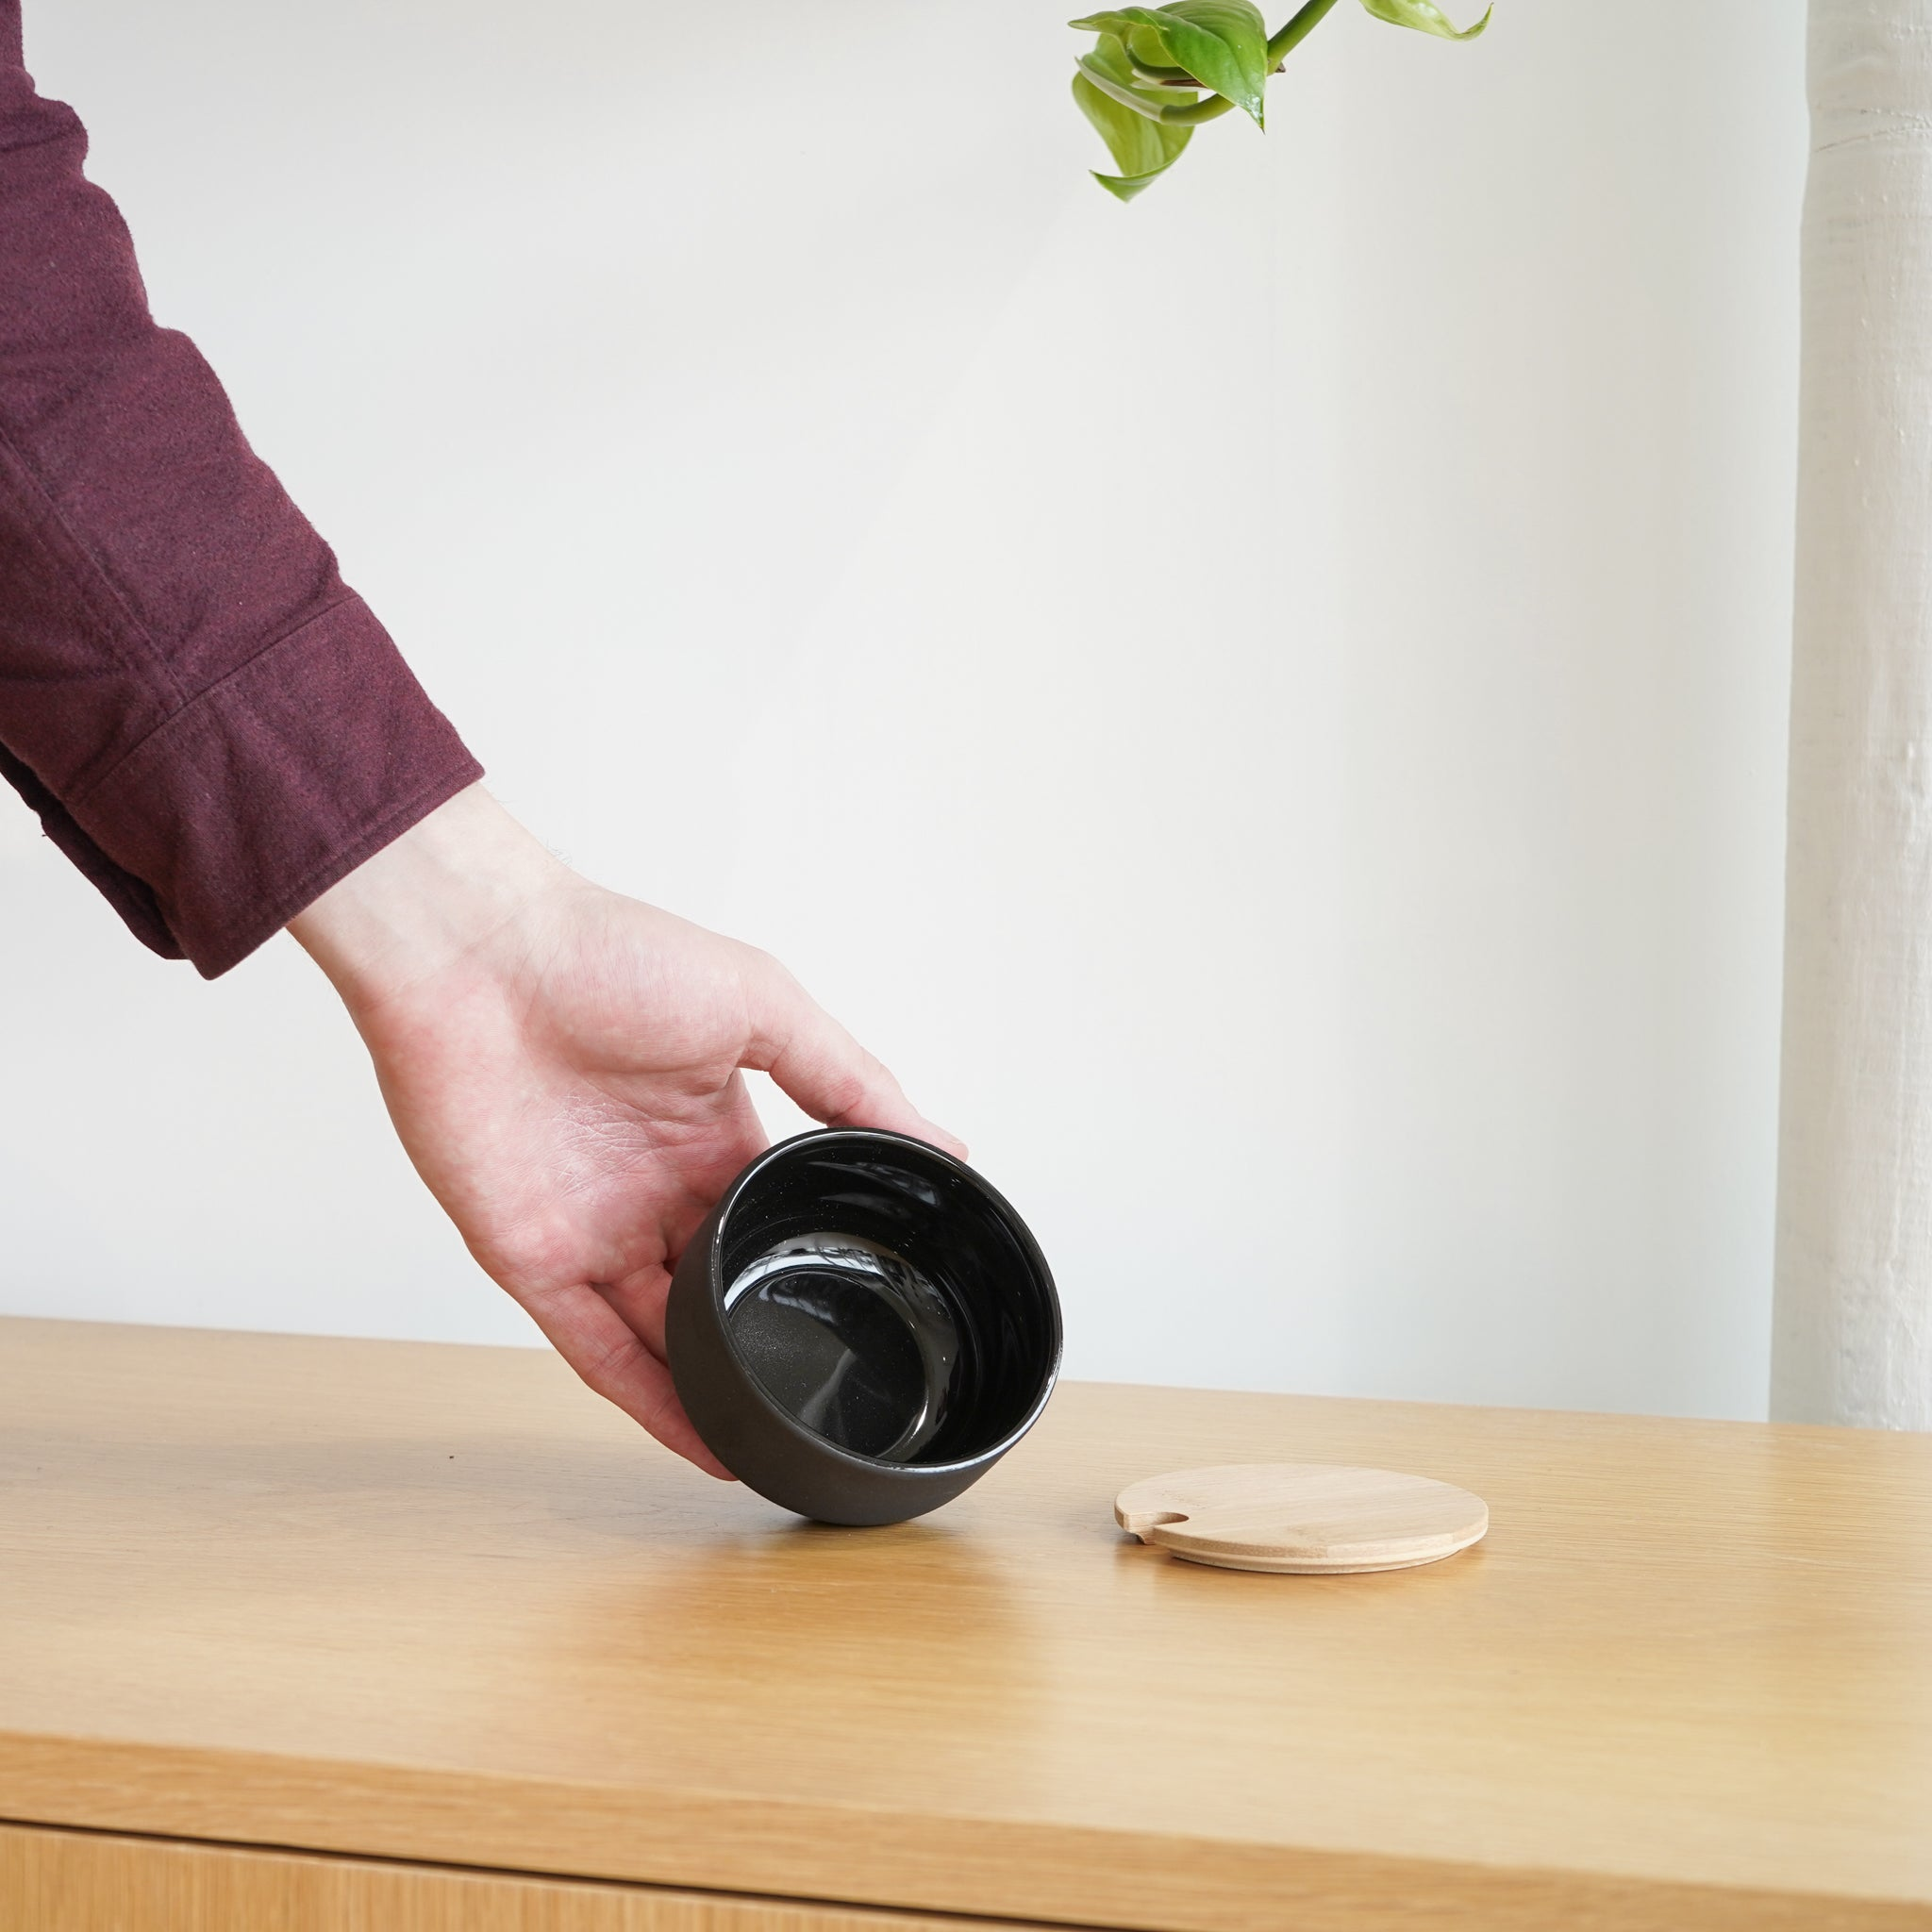 A stoneware sugar dish from Stelton - the Theo Coffee Maker.